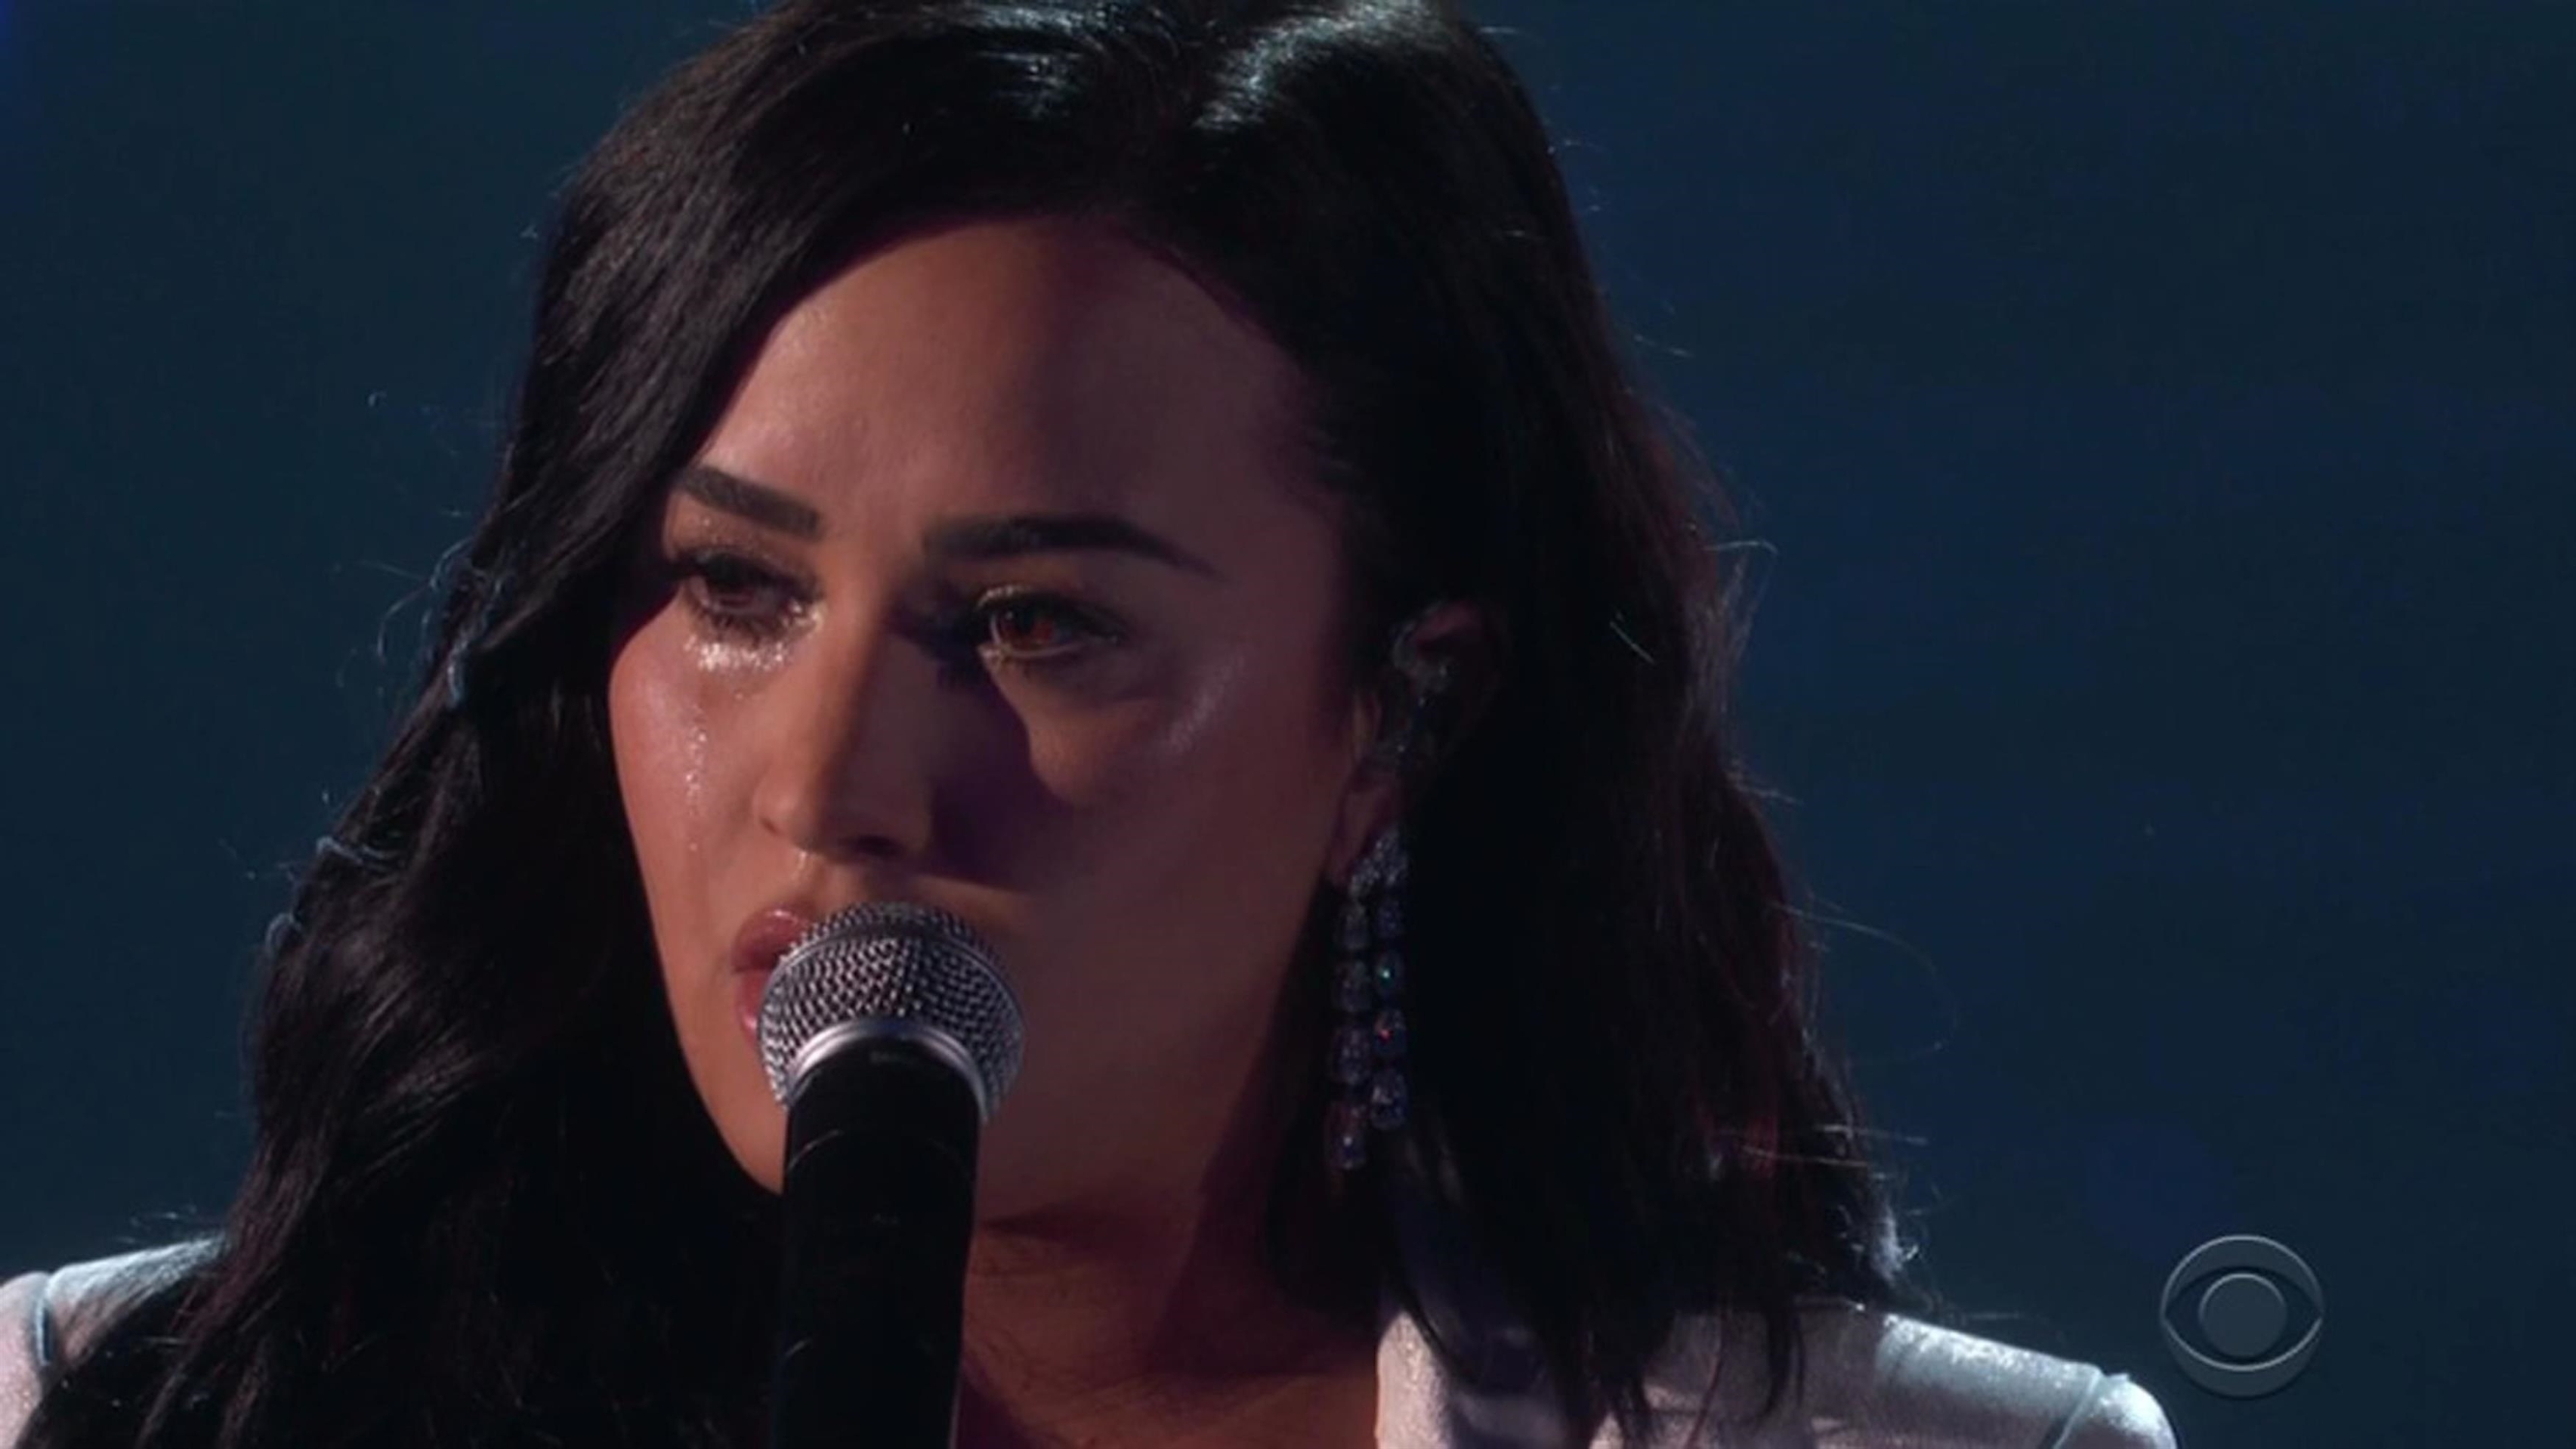 """Los Angeles, CA  - Demi Lovato gives a premiere performance of Anyone at the Grammys - and is so emotional she stops and restarts the song. Demi Lovato performed live for the first time in nearly two years at the 62nd Grammy Awards on Sunday. She was returning to the stage for the first time since she almost lost her life last year. The singer, 27, debuted her new song Anyone and looked stunning in a white gown. After an introduction by Little Women director Greta Gerwing, Lovato was so overcome with emotion when she began to sing she paused to collect herself before starting the song again. The lyrics touched upon her overdose in July 2018 and how she spent time in rehab and therapy overcoming her addiction. Demi wrote and recorded Anyone just four days before suffering the overdose. The single will reportedly be included on Lovato's upcoming album. After Demi initially appeared overcome with emotion and asked her pianist to restart the song from the beginning, the performance went smoothly and Lovato let loose a series of full-throated, searching hooks. """"Is there anyone?"""" she sang. """"I need someone."""" Before taking the stage at the Los Angeles Staples Centre, Lovato discussed her new track in an interview with Apple Music's Beats 1 this week. """"I wish I could go back in time and help that version of myself,"""" Lovato told Zane Lowe. """"I listen back to these lyrics and I hear it as a cry for help."""" Mentioning her hospital stay, she remembered thinking: """"If I ever come back, I want to sing this song.""""  *BACKGRID DOES NOT CLAIM ANY COPYRIGHT OR LICENSE IN THE ATTACHED MATERIAL. ANY DOWNLOADING FEES CHARGED BY BACKGRID ARE FOR BACKGRID'S SERVICES ONLY, AND DO NOT, NOR ARE THEY INTENDED TO, CONVEY TO THE USER ANY COPYRIGHT OR LICENSE IN THE MATERIAL. BY PUBLISHING THIS MATERIAL , THE USER EXPRESSLY AGREES TO INDEMNIFY AND TO HOLD BACKGRID HARMLESS FROM ANY CLAIMS, DEMANDS, OR CAUSES OF ACTION ARISING OUT OF OR CONNECTED IN ANY WAY WITH USER'S PUBLICATION OF THE MATERIAL*  BA"""